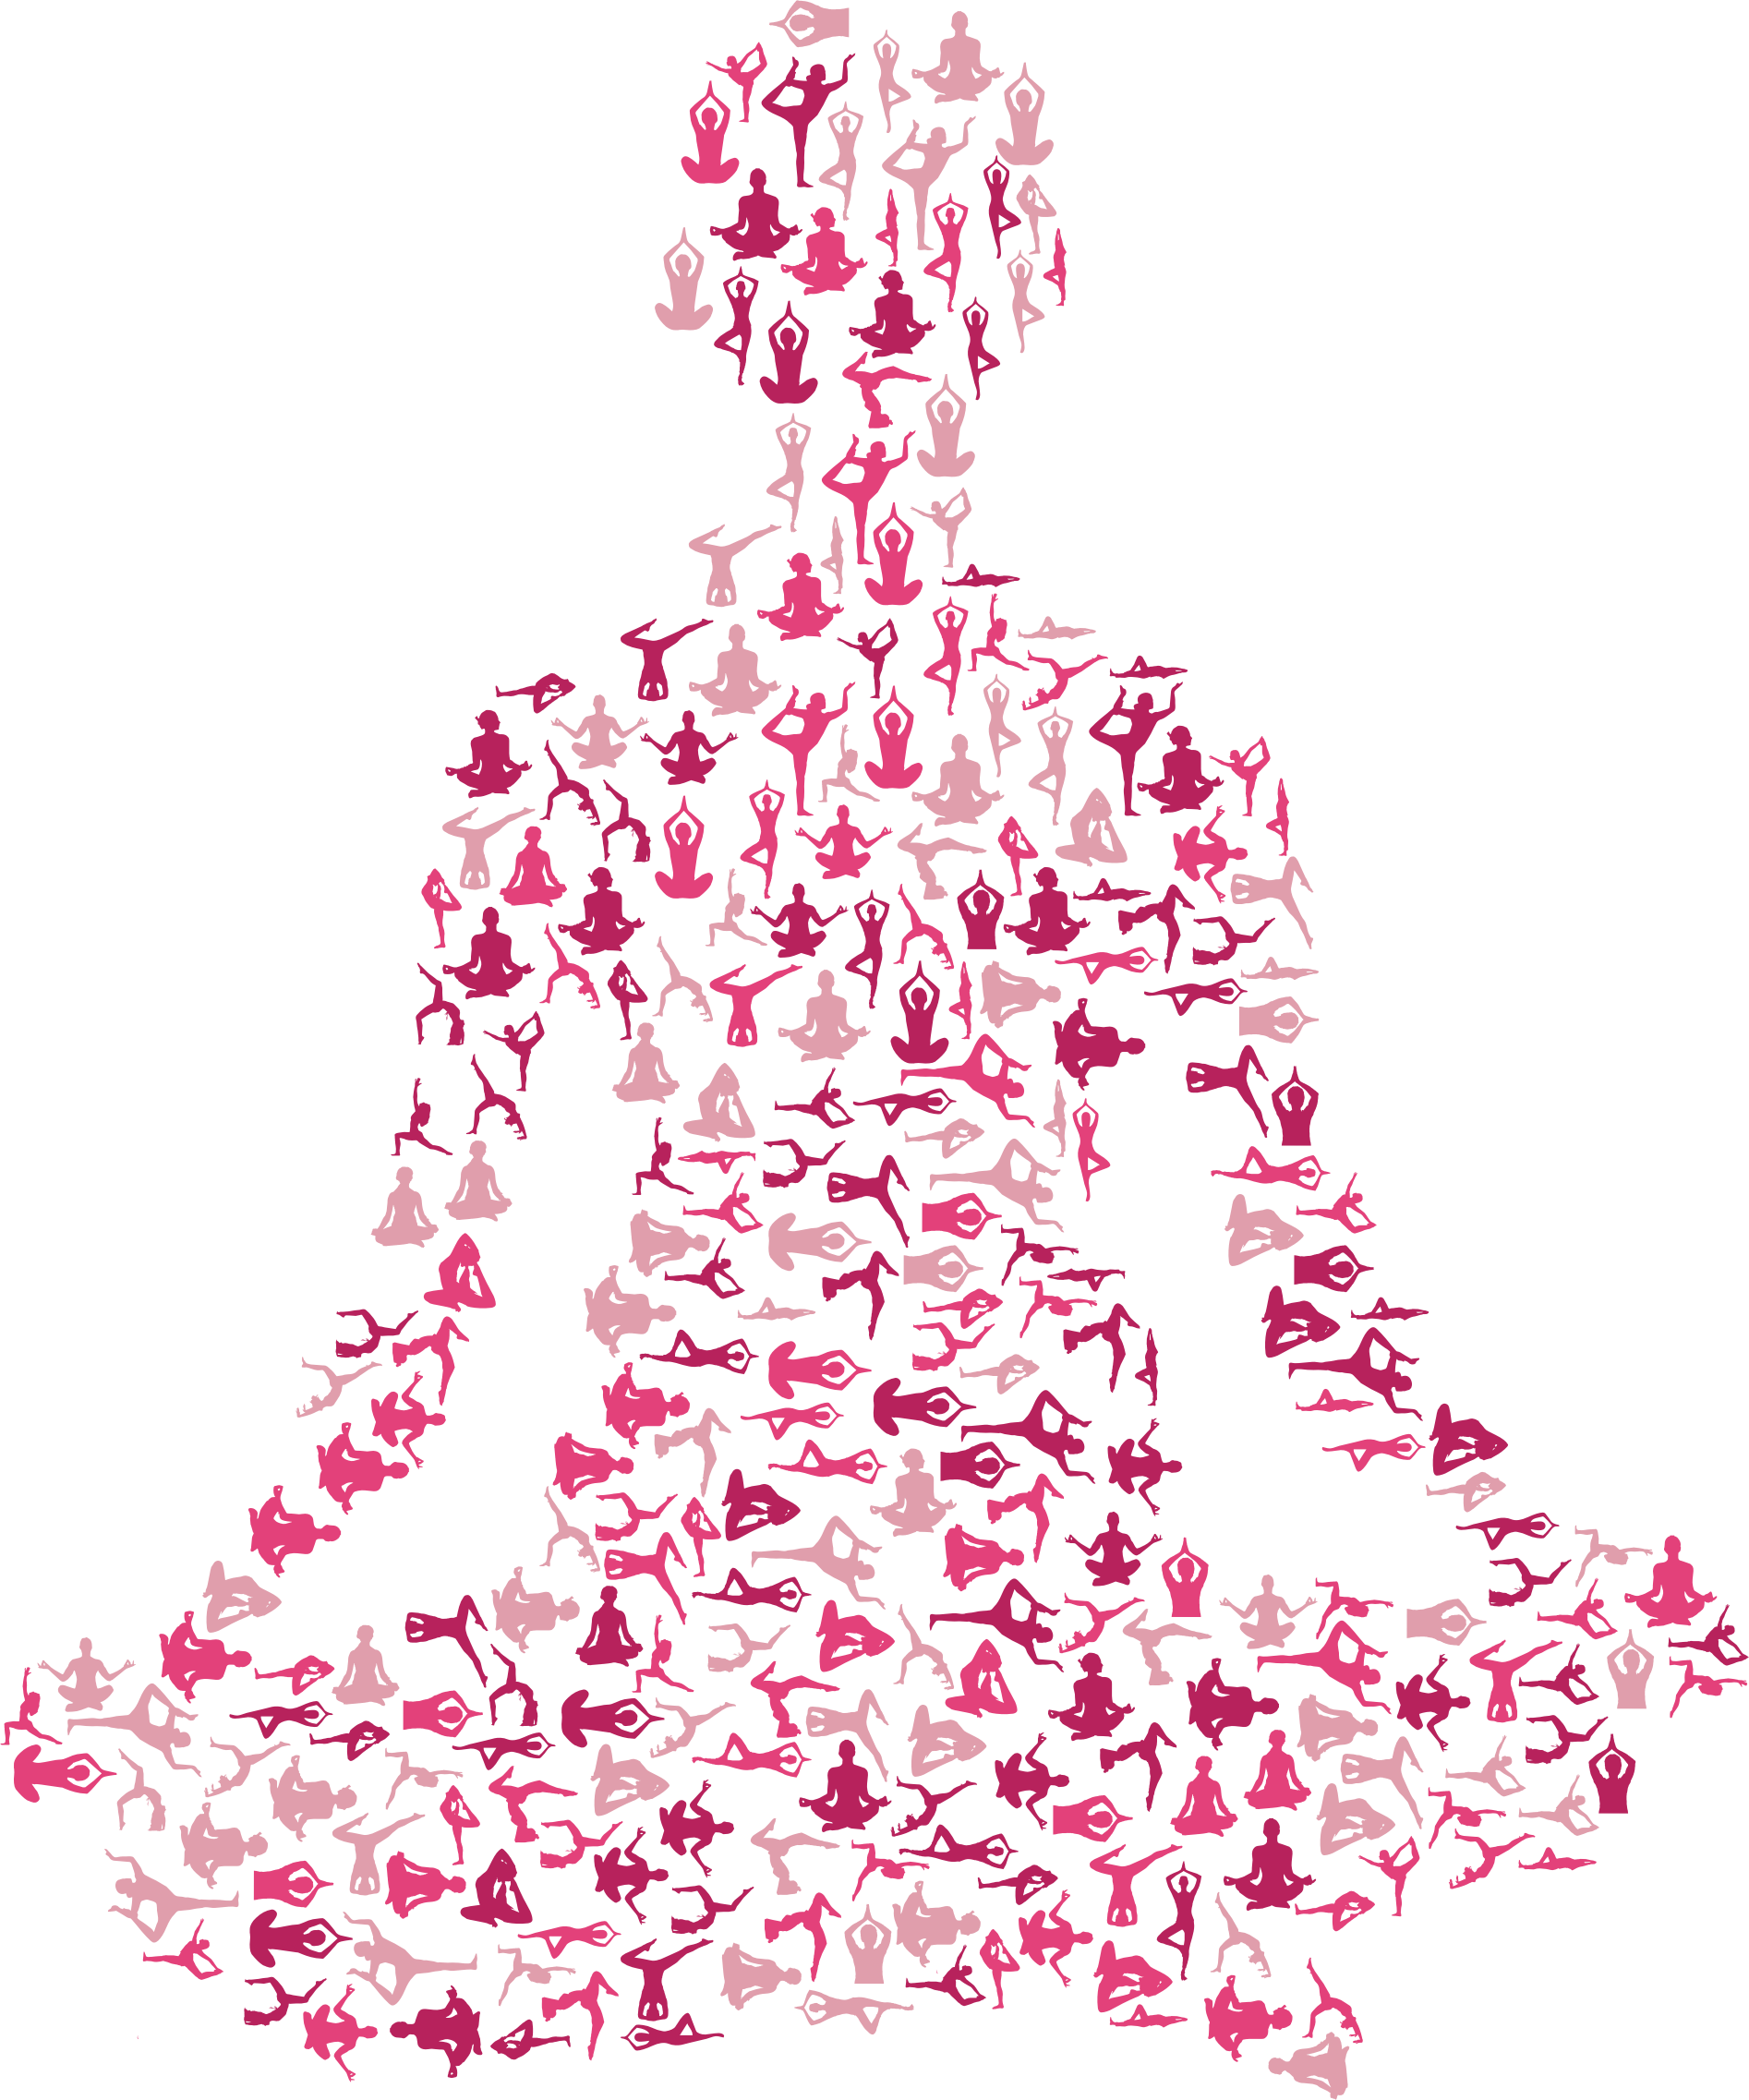 Download This Free Icons Png Design Of Female Yoga Pose Silhouette Full Size Png Image Pngkit